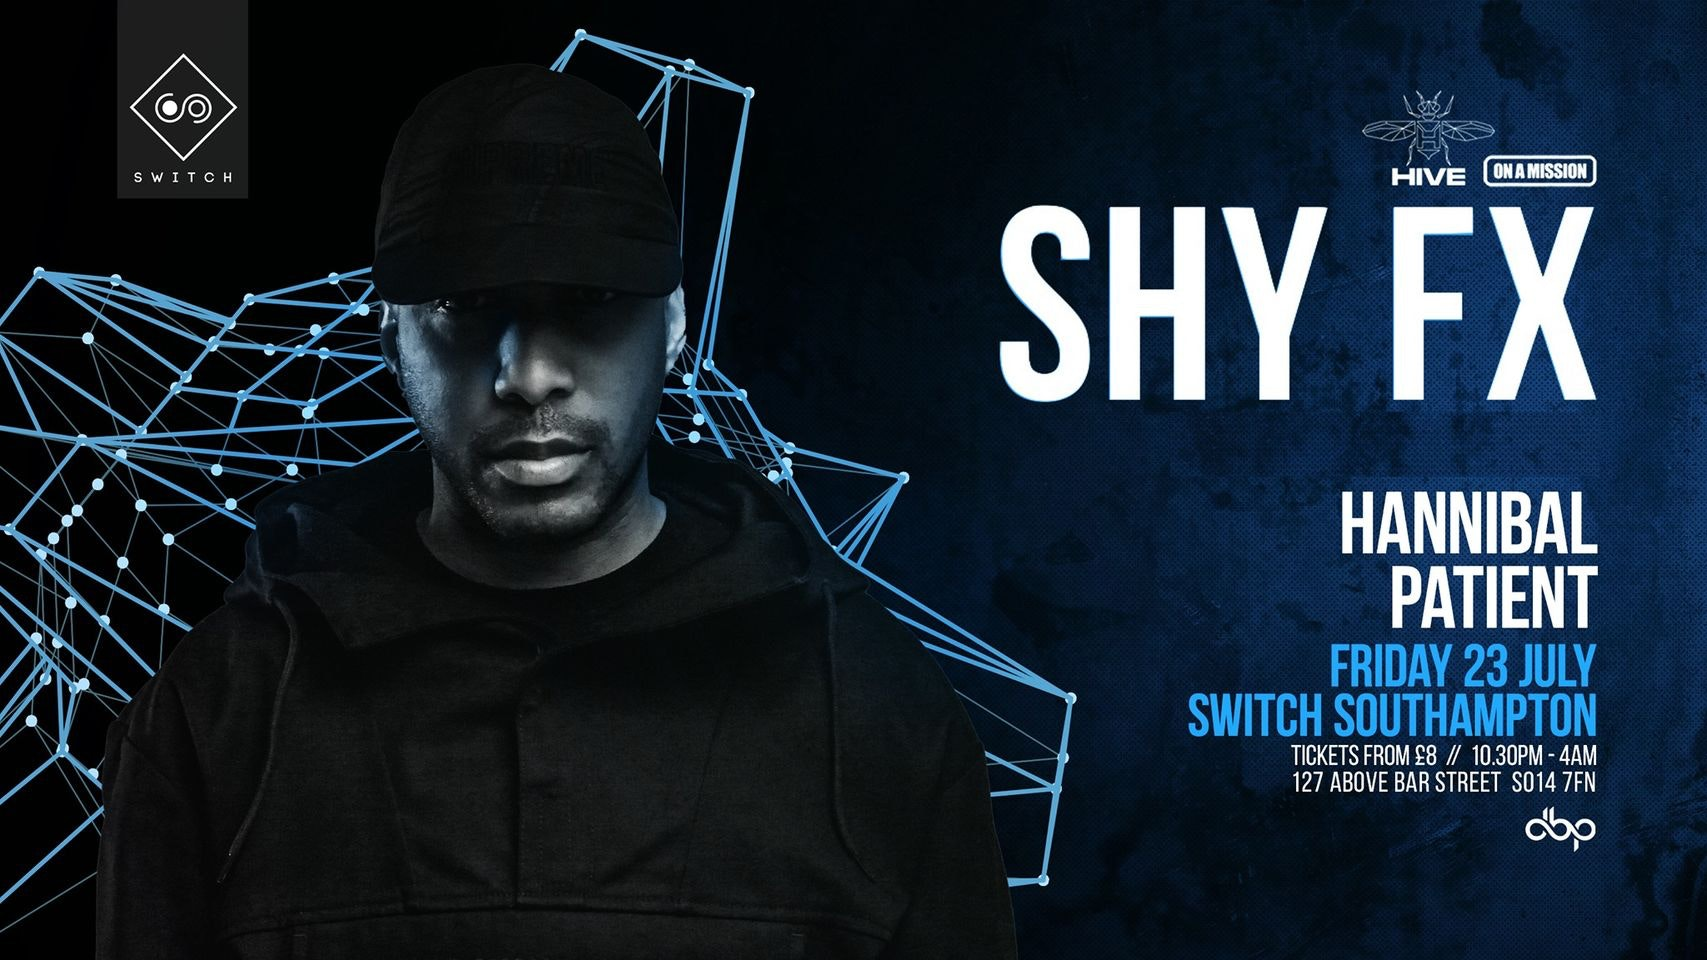 HIVE & OAM presents…. SHY FX – 500 tixs remain